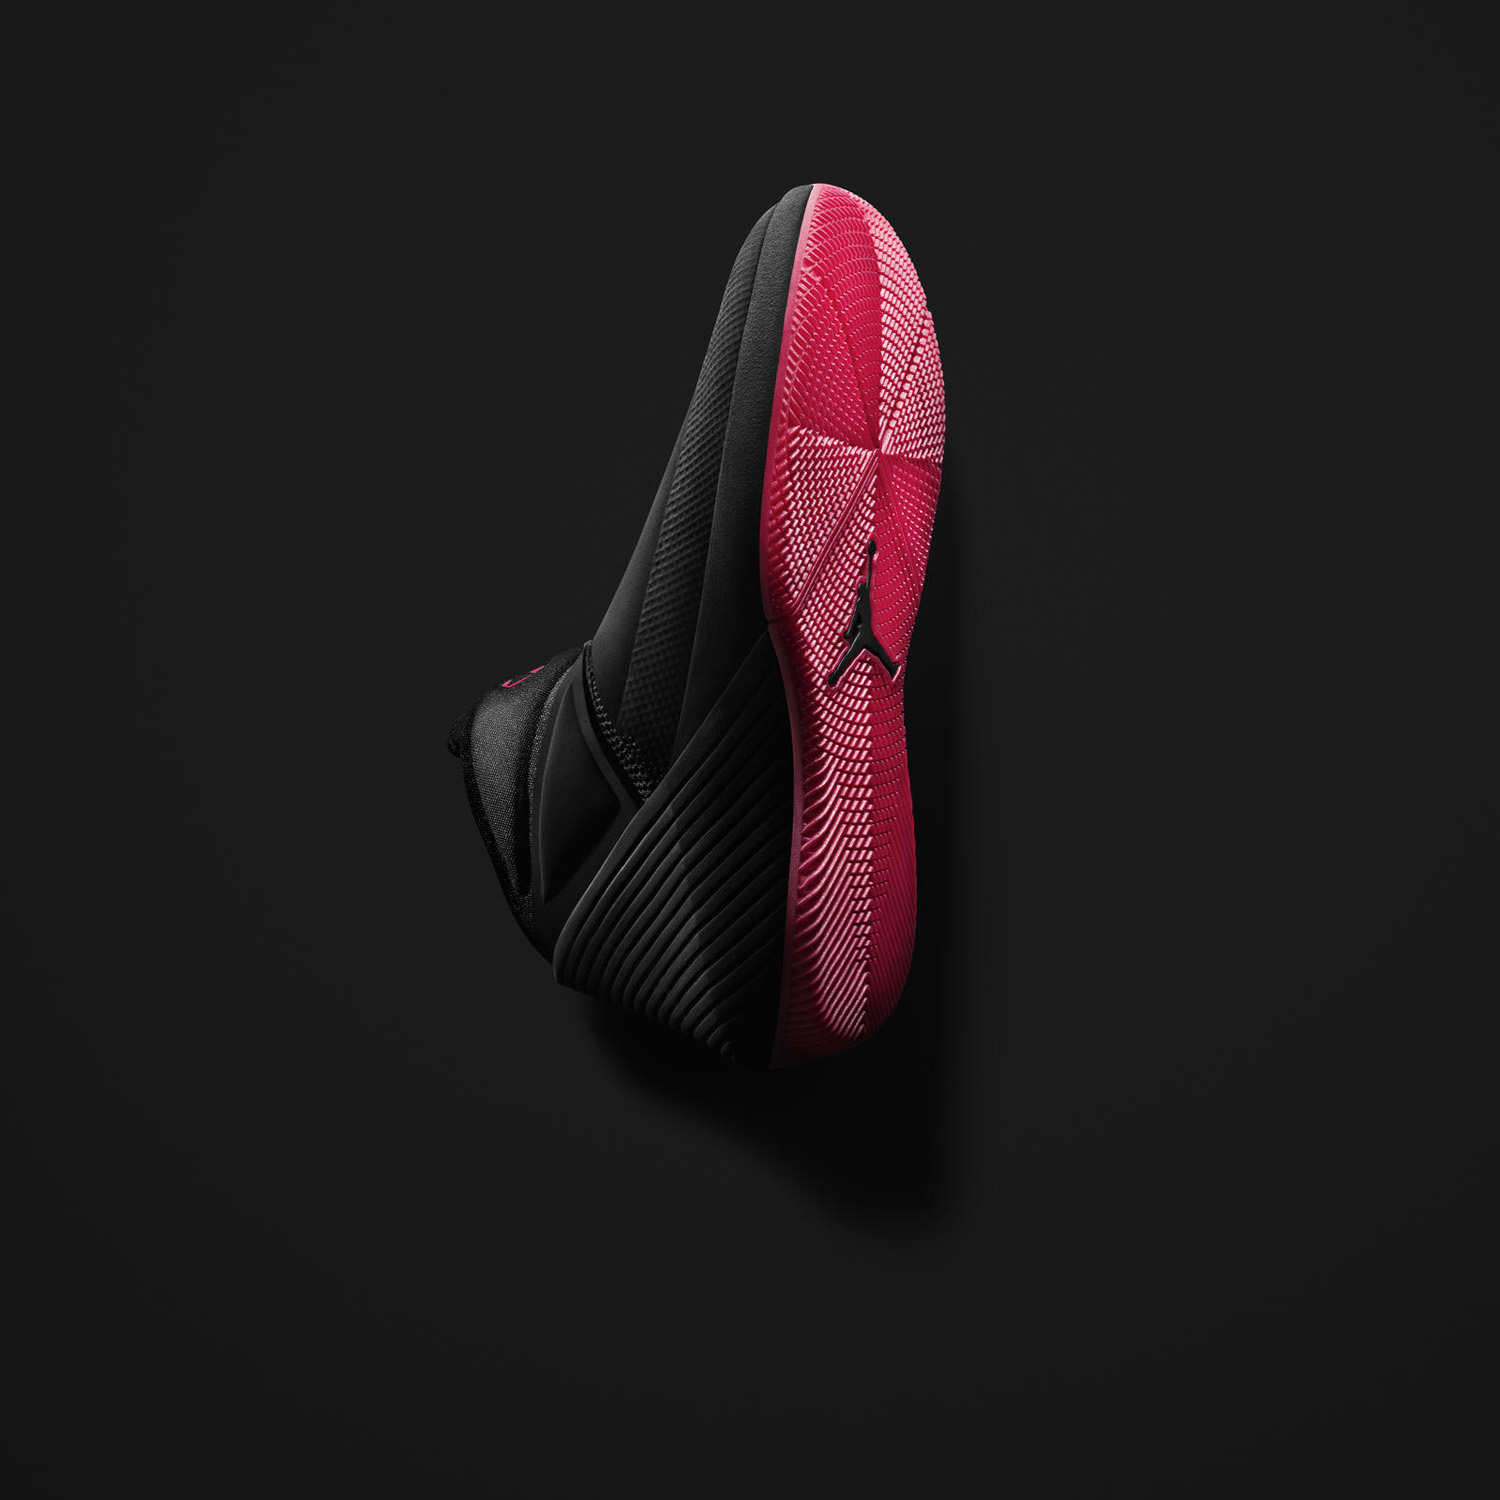 c114aee0608f Jordan-Why-Not-Zer0-1-Bred - WearTesters